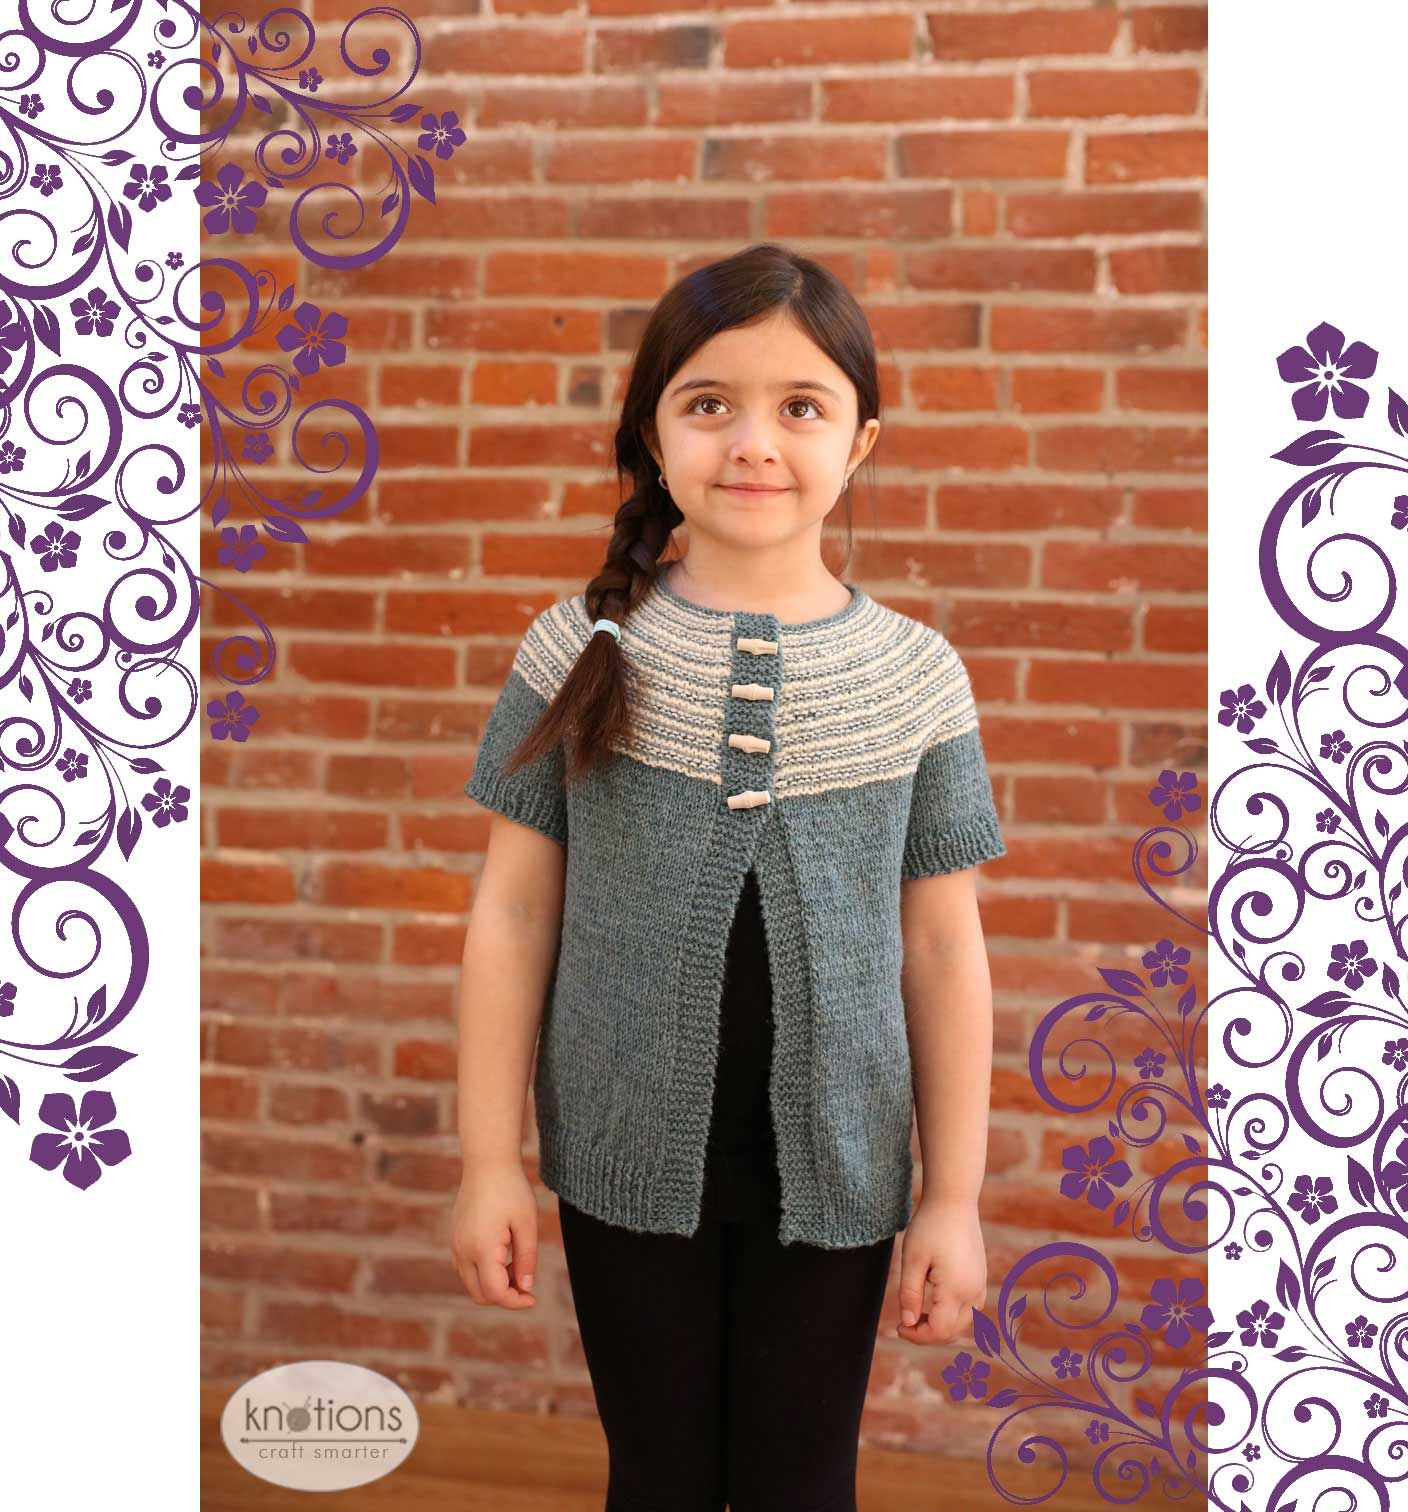 Spring awakening cardigan stockinette garter stitch and free knitting pattern for a top down girls cardigan with short sleeves a bankloansurffo Images